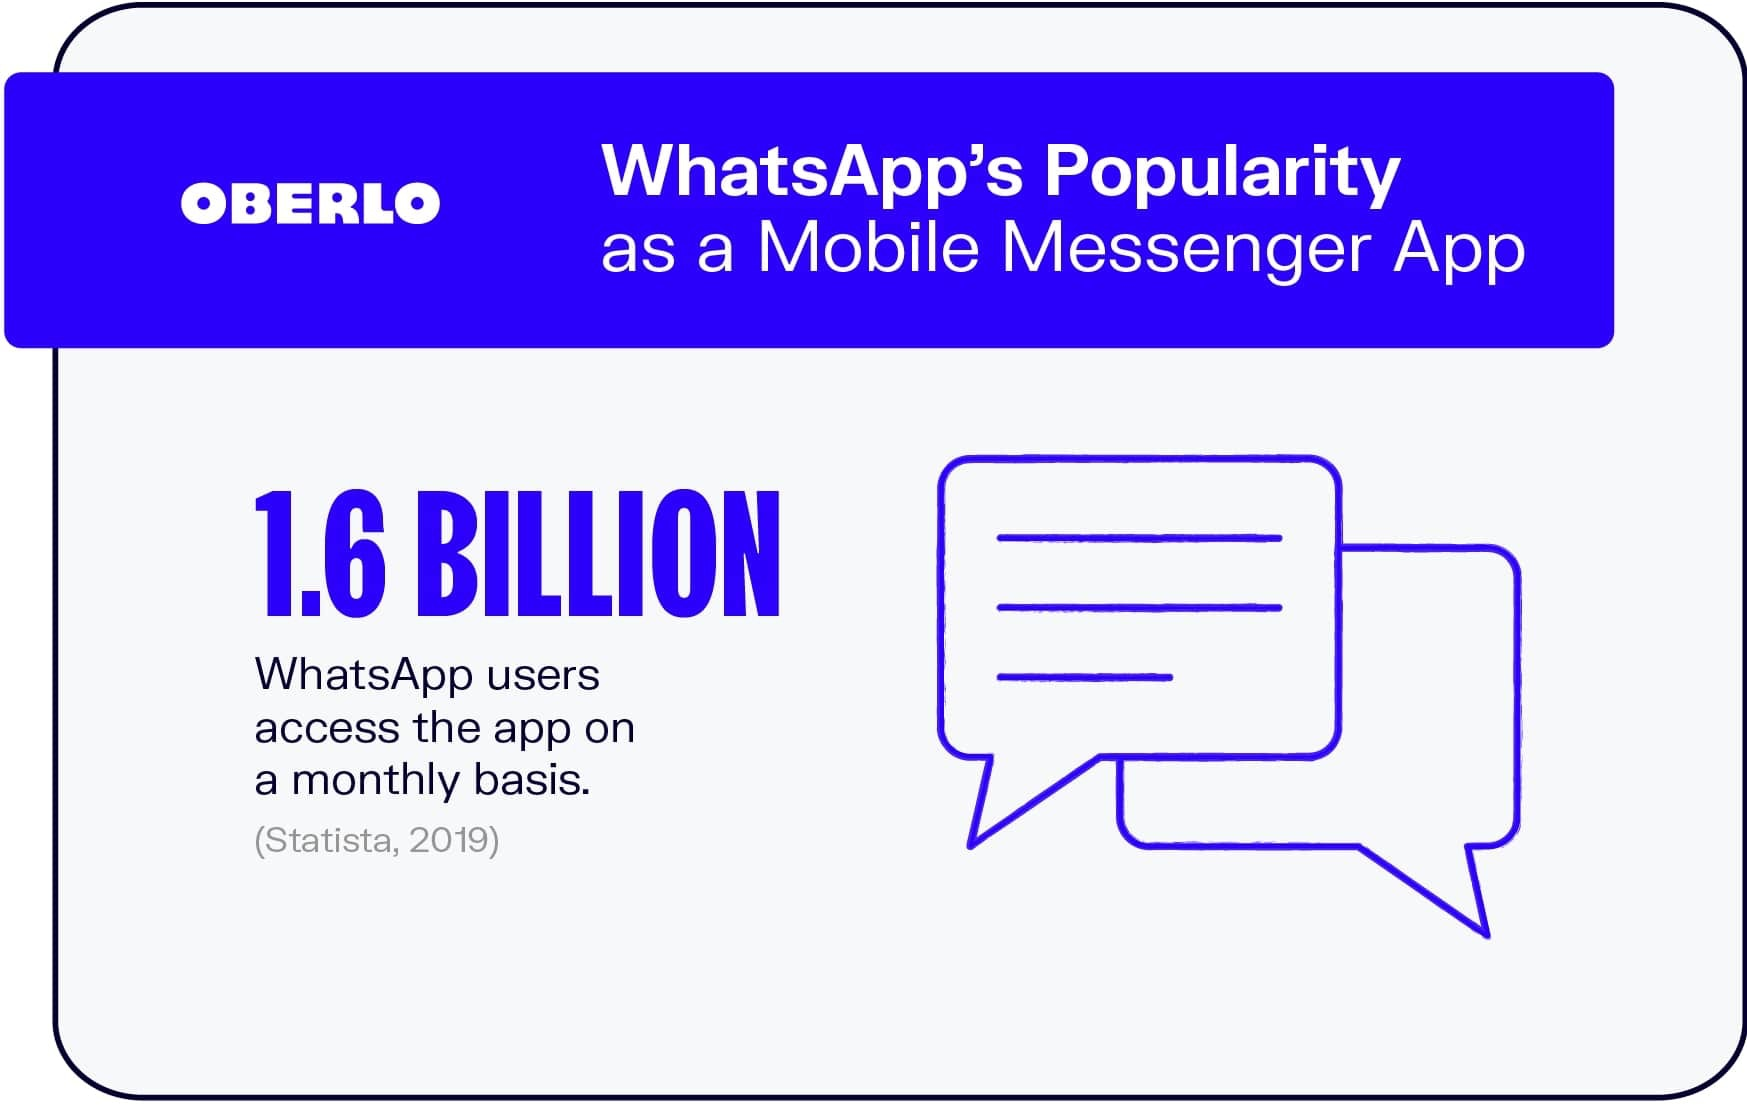 WhatsApp's Popularity as a Mobile Messenger App